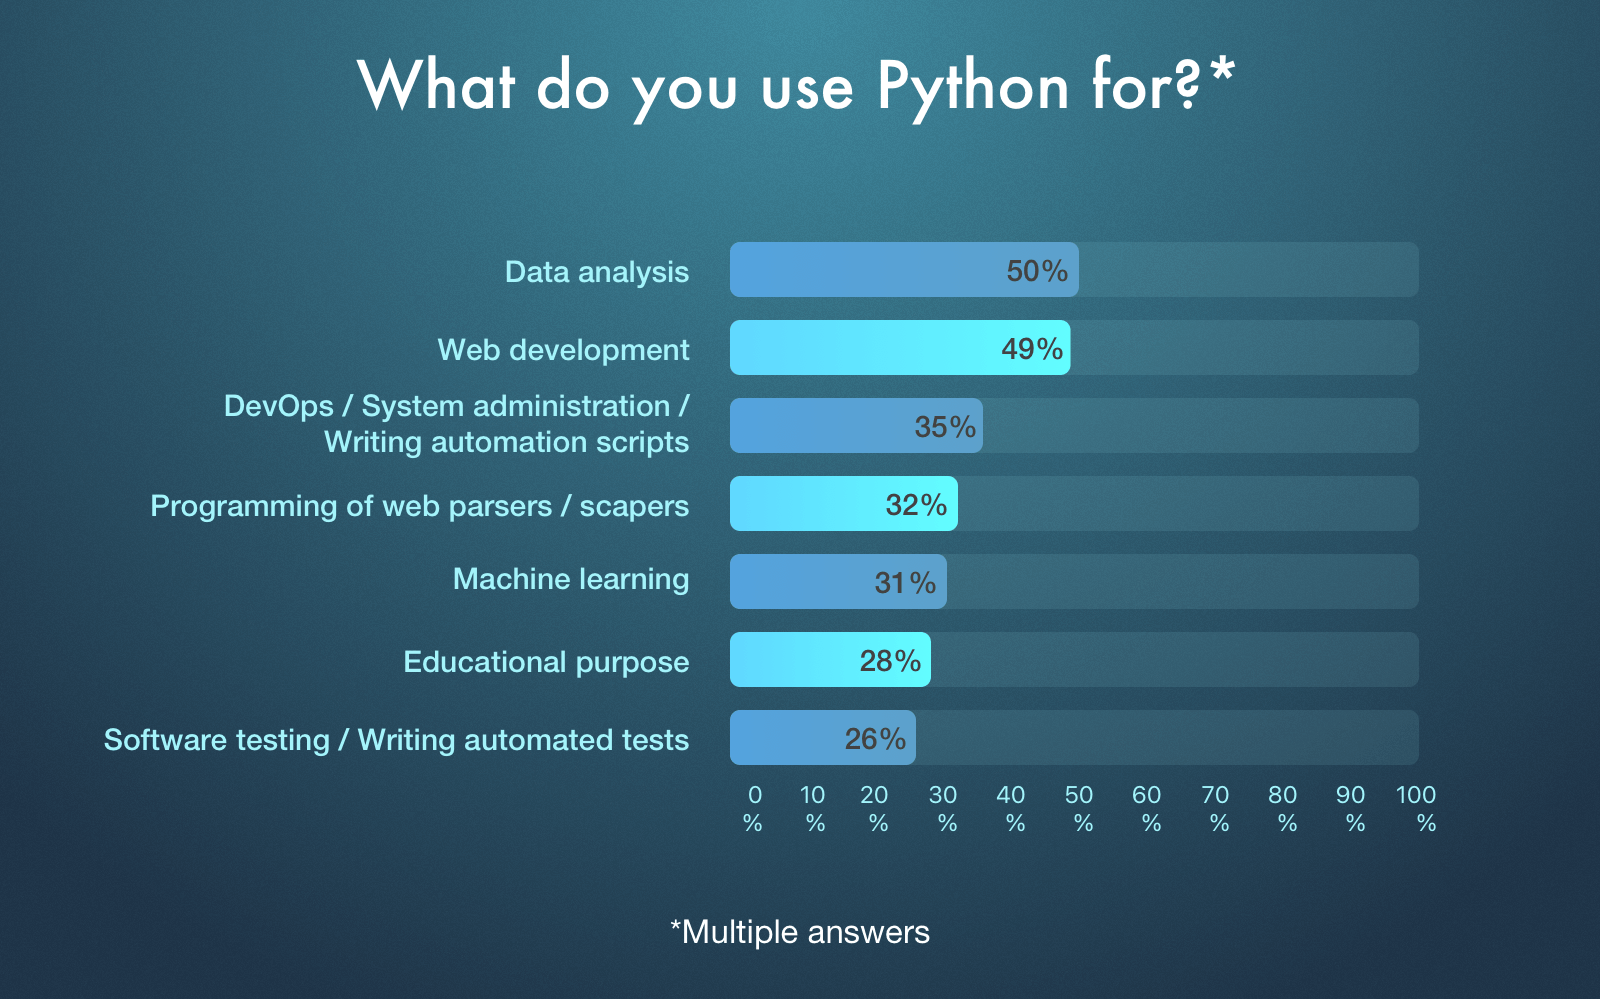 Python use cases